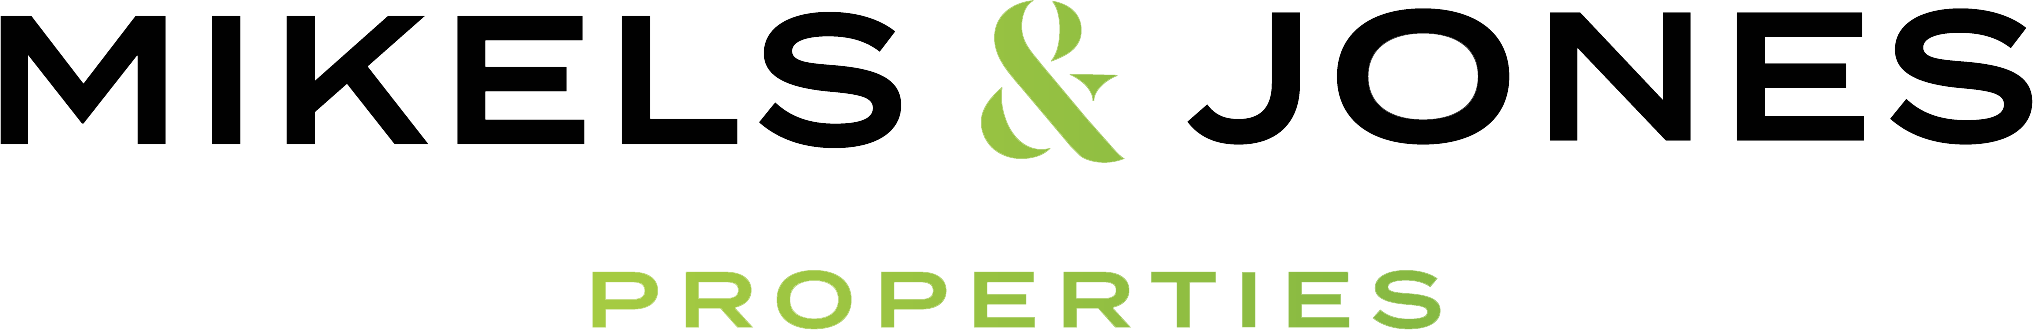 Mikels & Jones Properties, Inc.